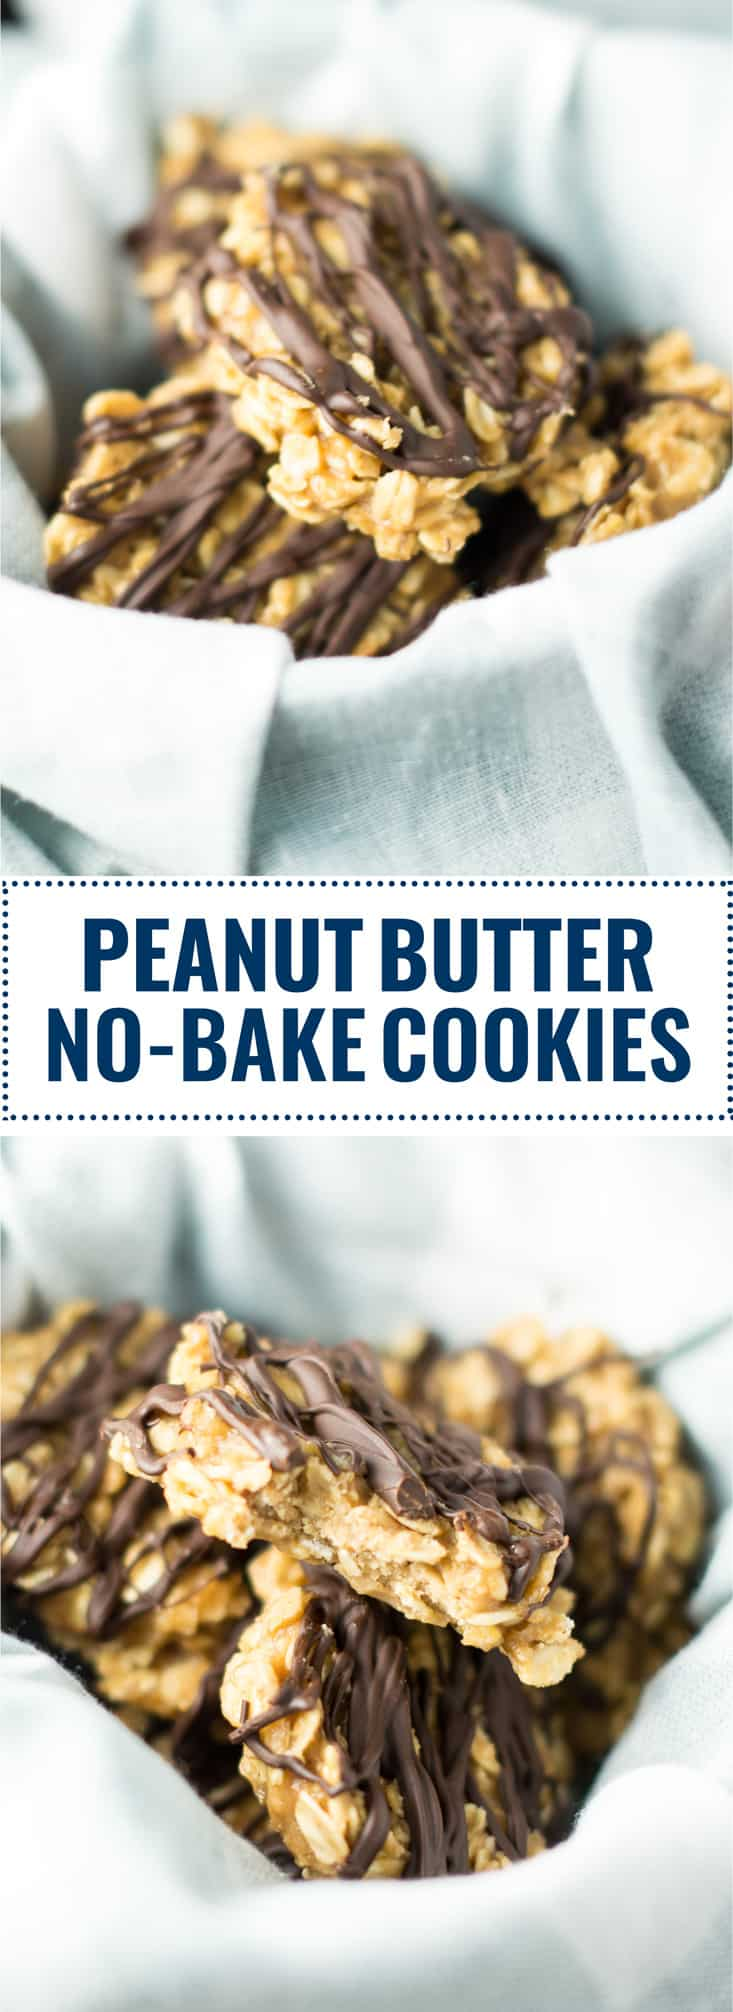 healthy peanut butter no bake cookies (vegan, gluten free)